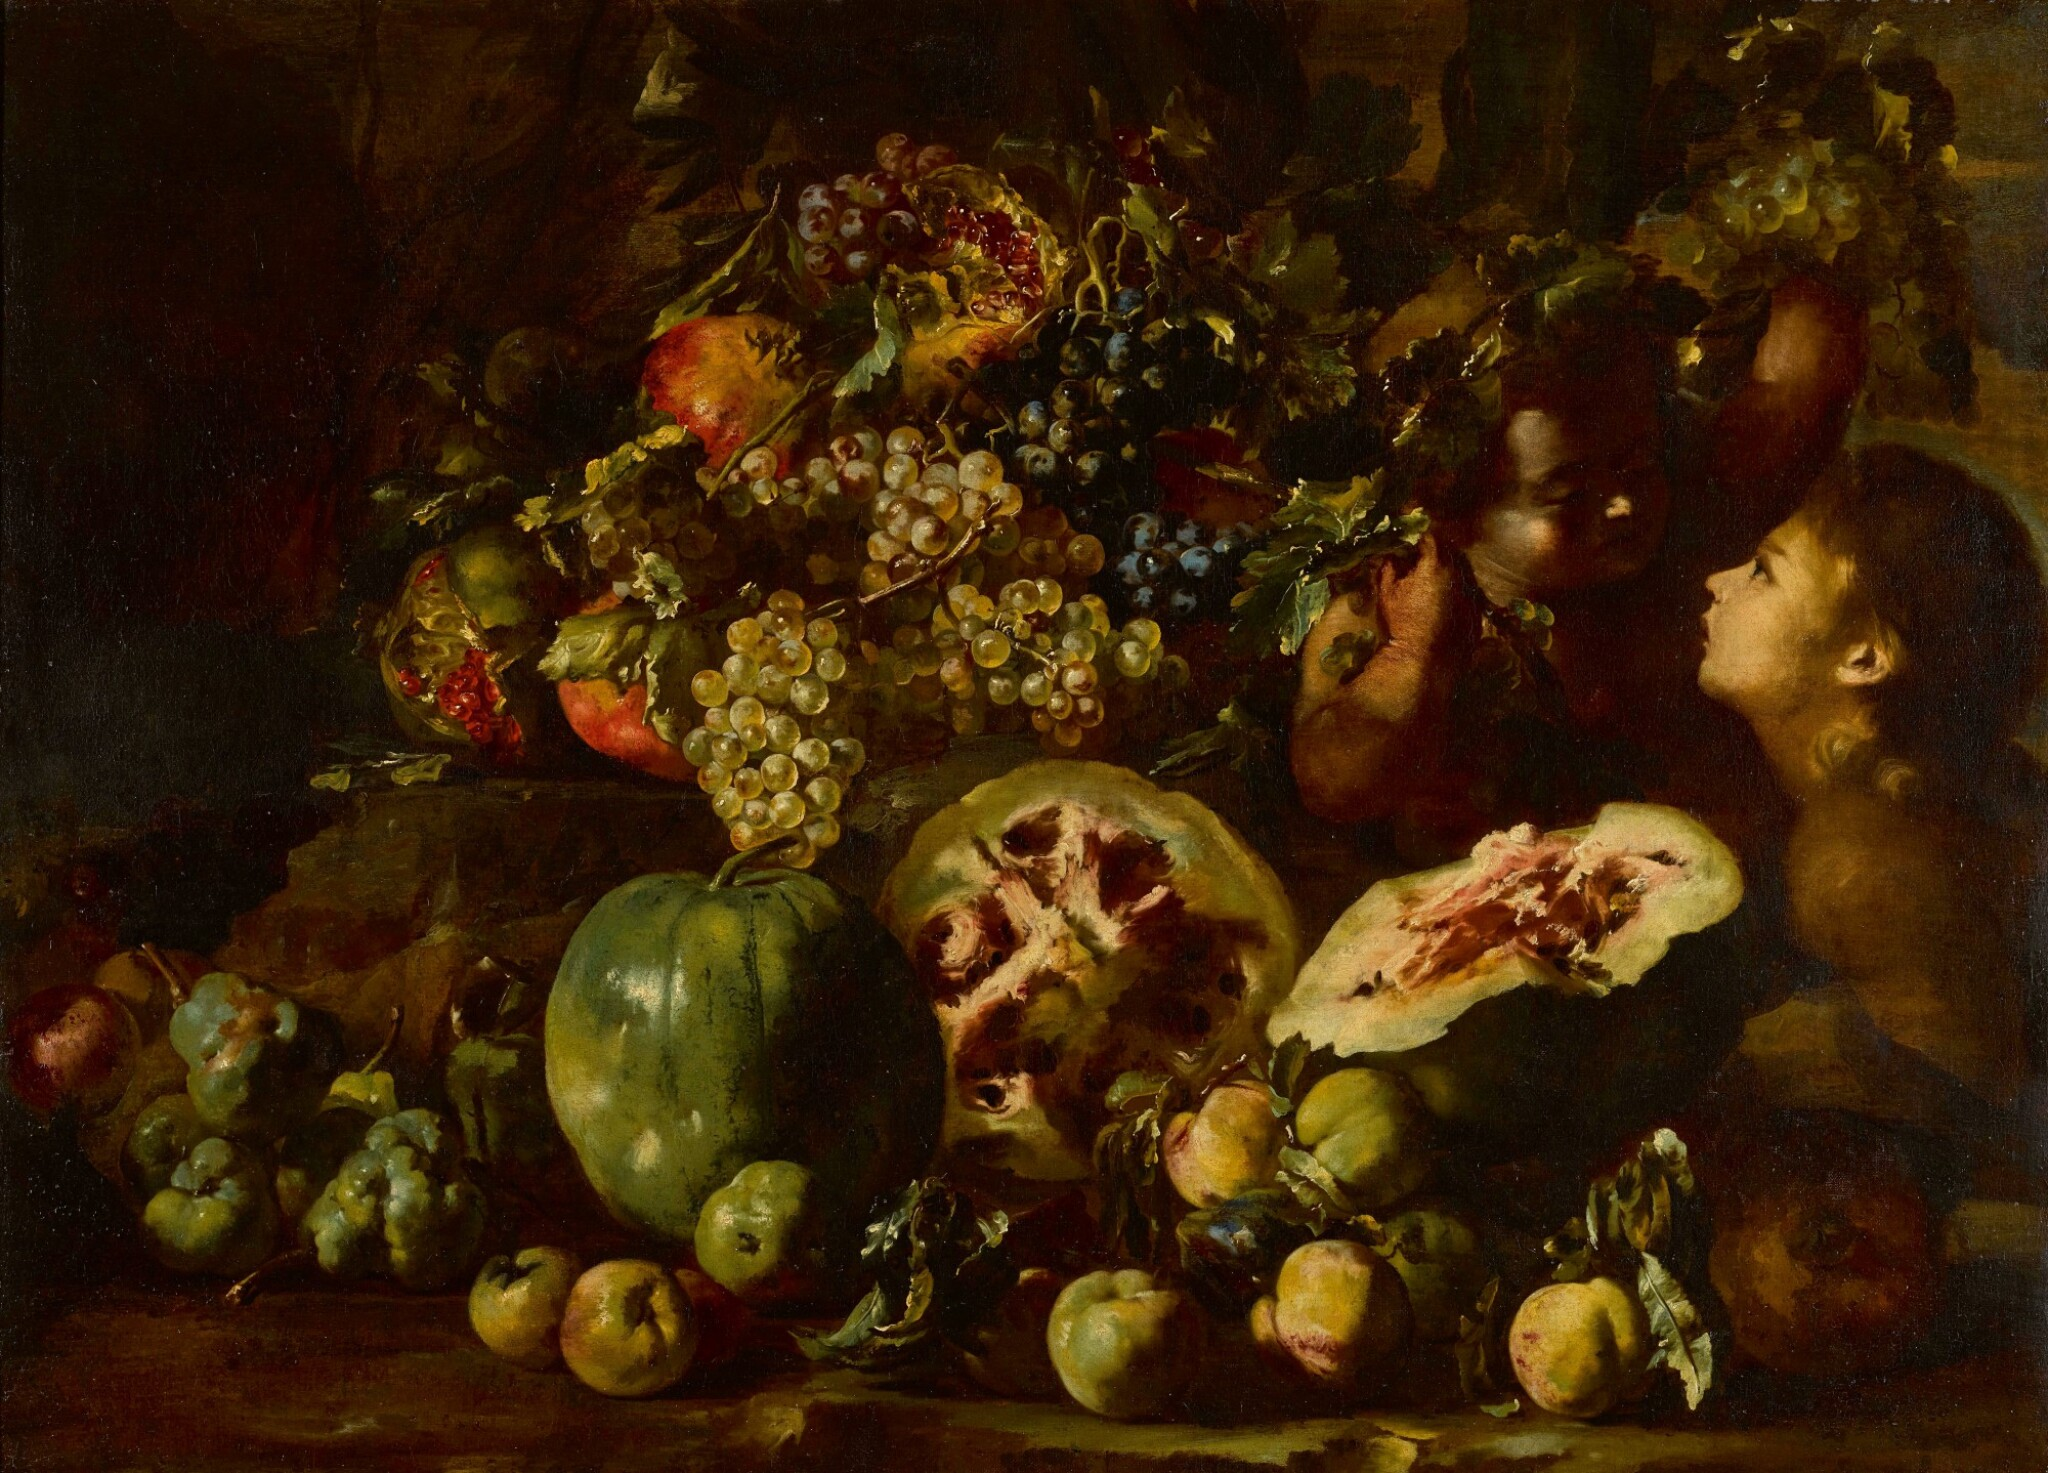 View 1 of Lot 123. Still life with watermelons, grapes, apples, pomegranates and other fruits, with two children.